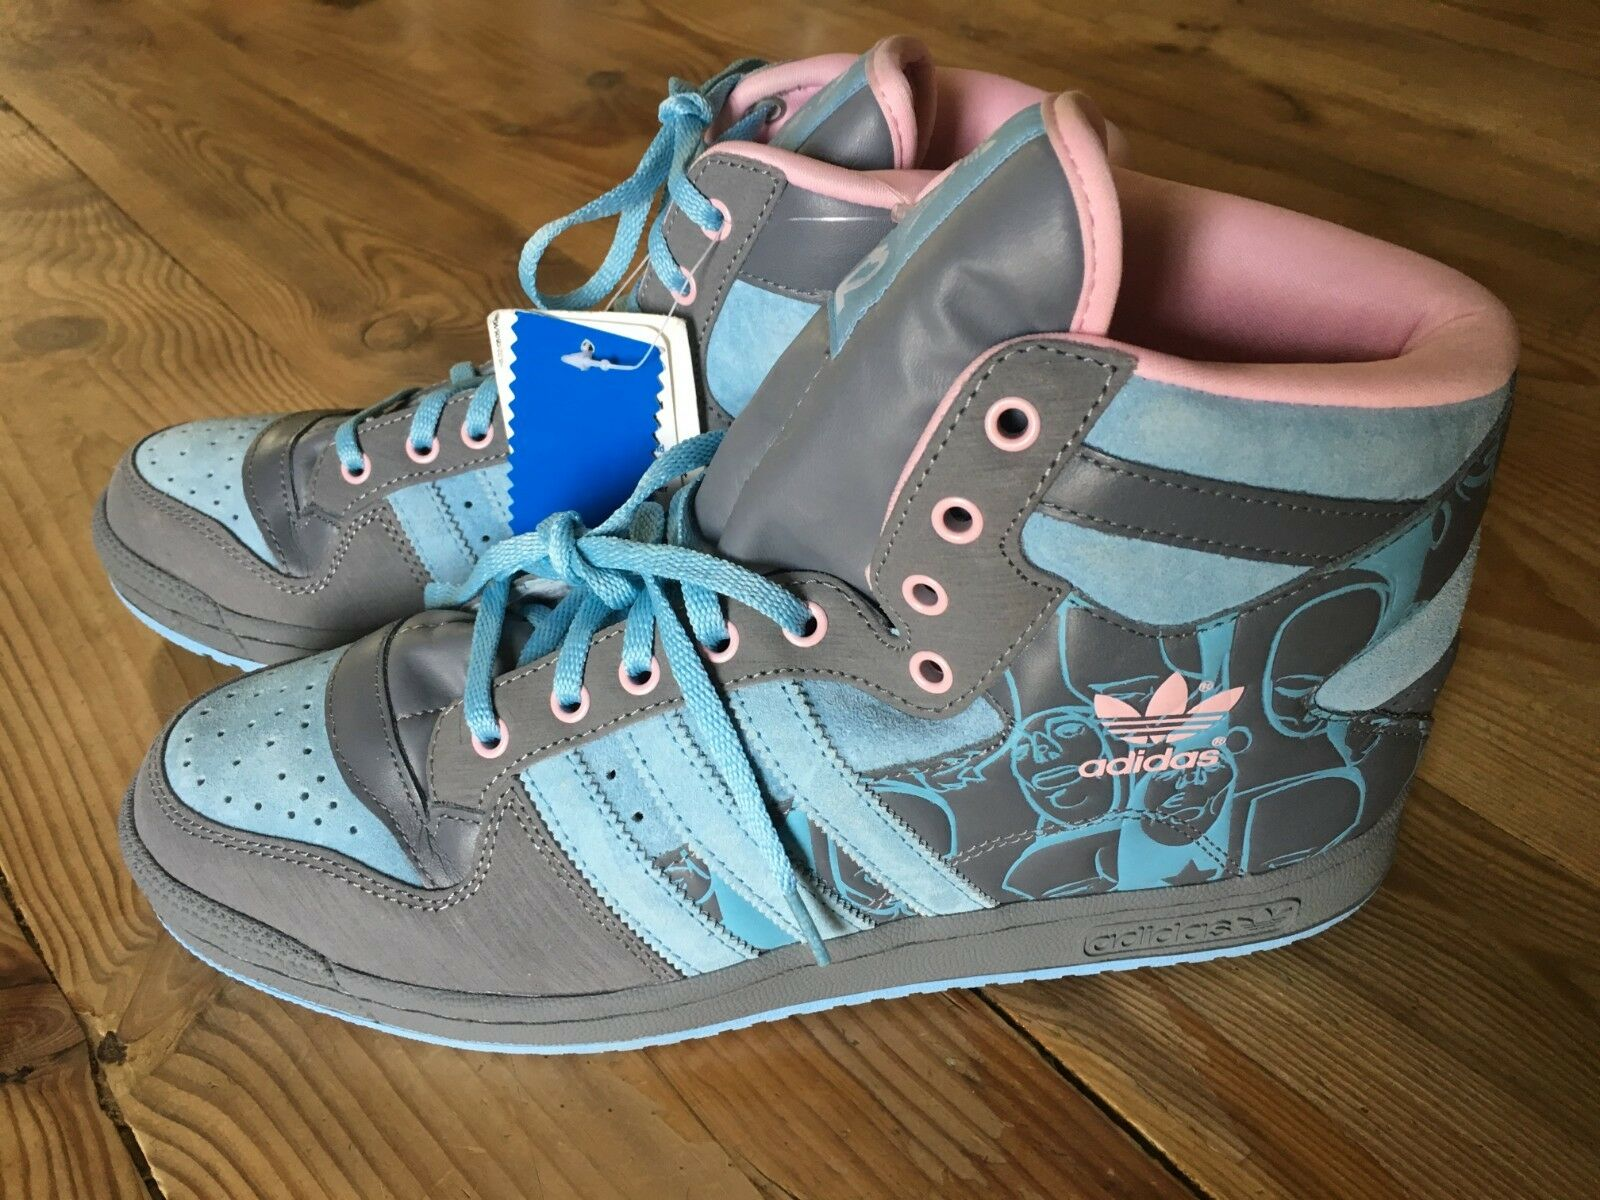 ADIDAS DECADE HI SHOES SAM FLORES UPPERS SNEAKERS bluee Pink RARE Sz 10